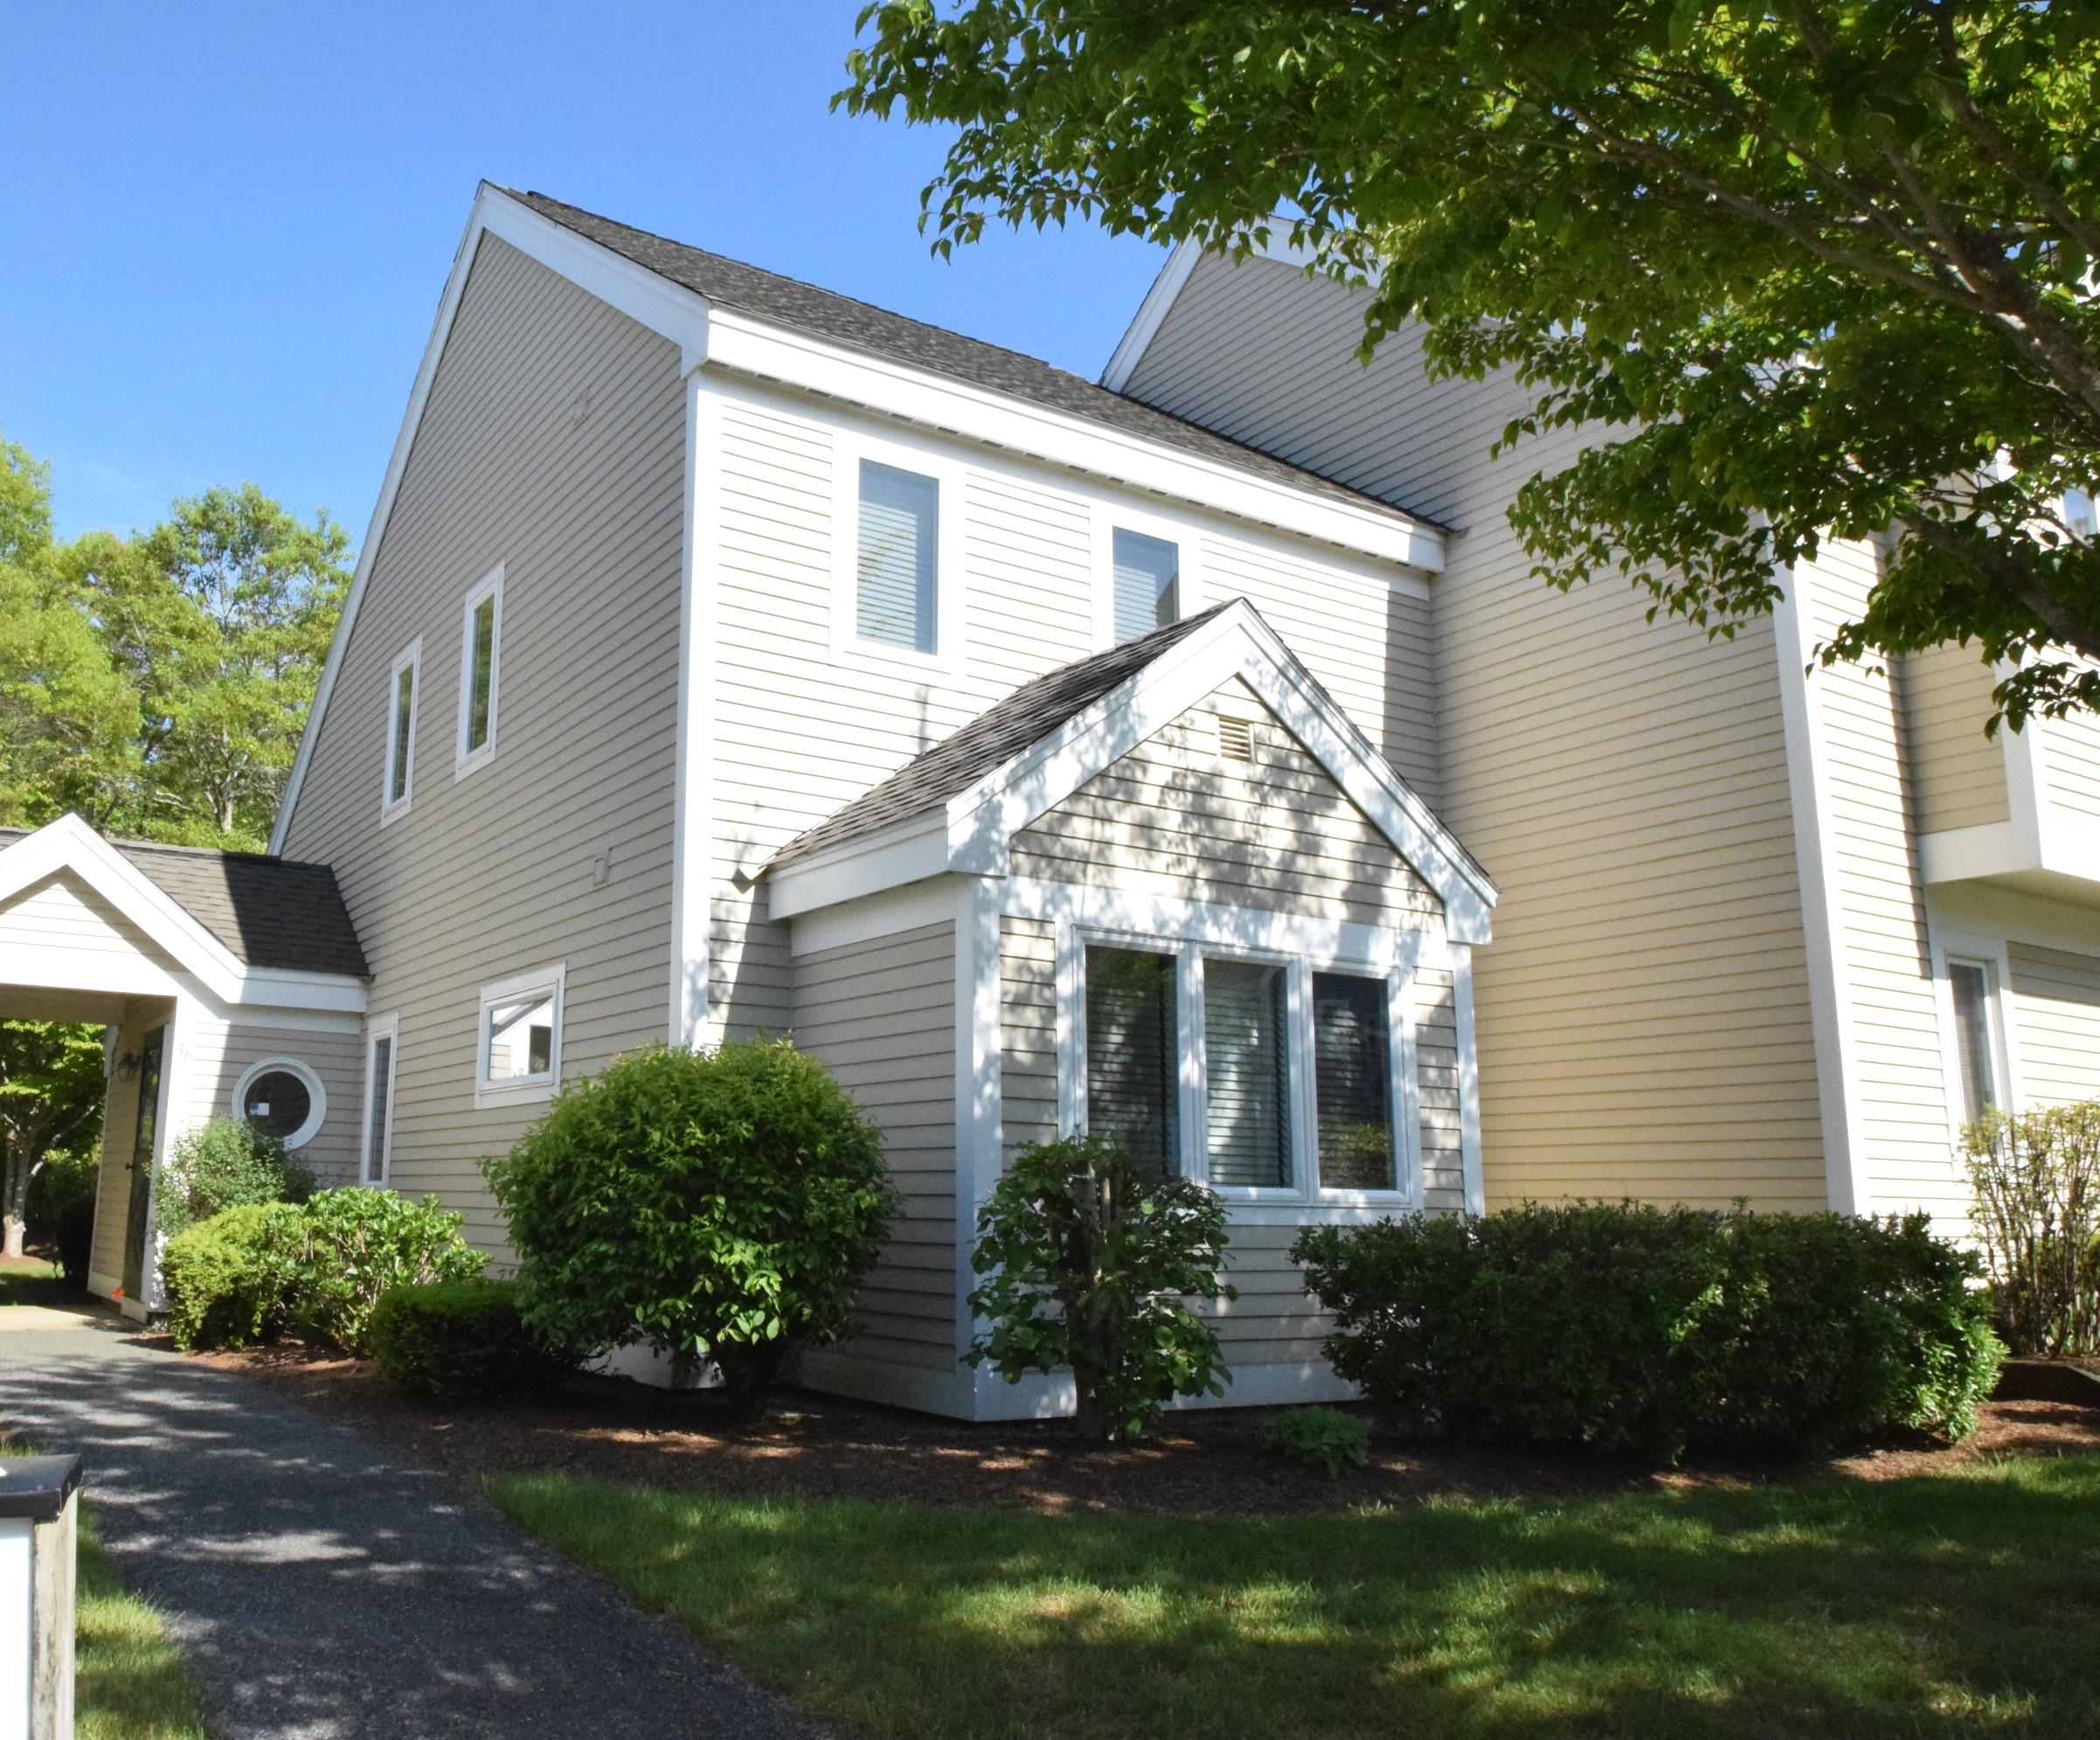 36 Howland Circle, Brewster MA, 02631 sales details